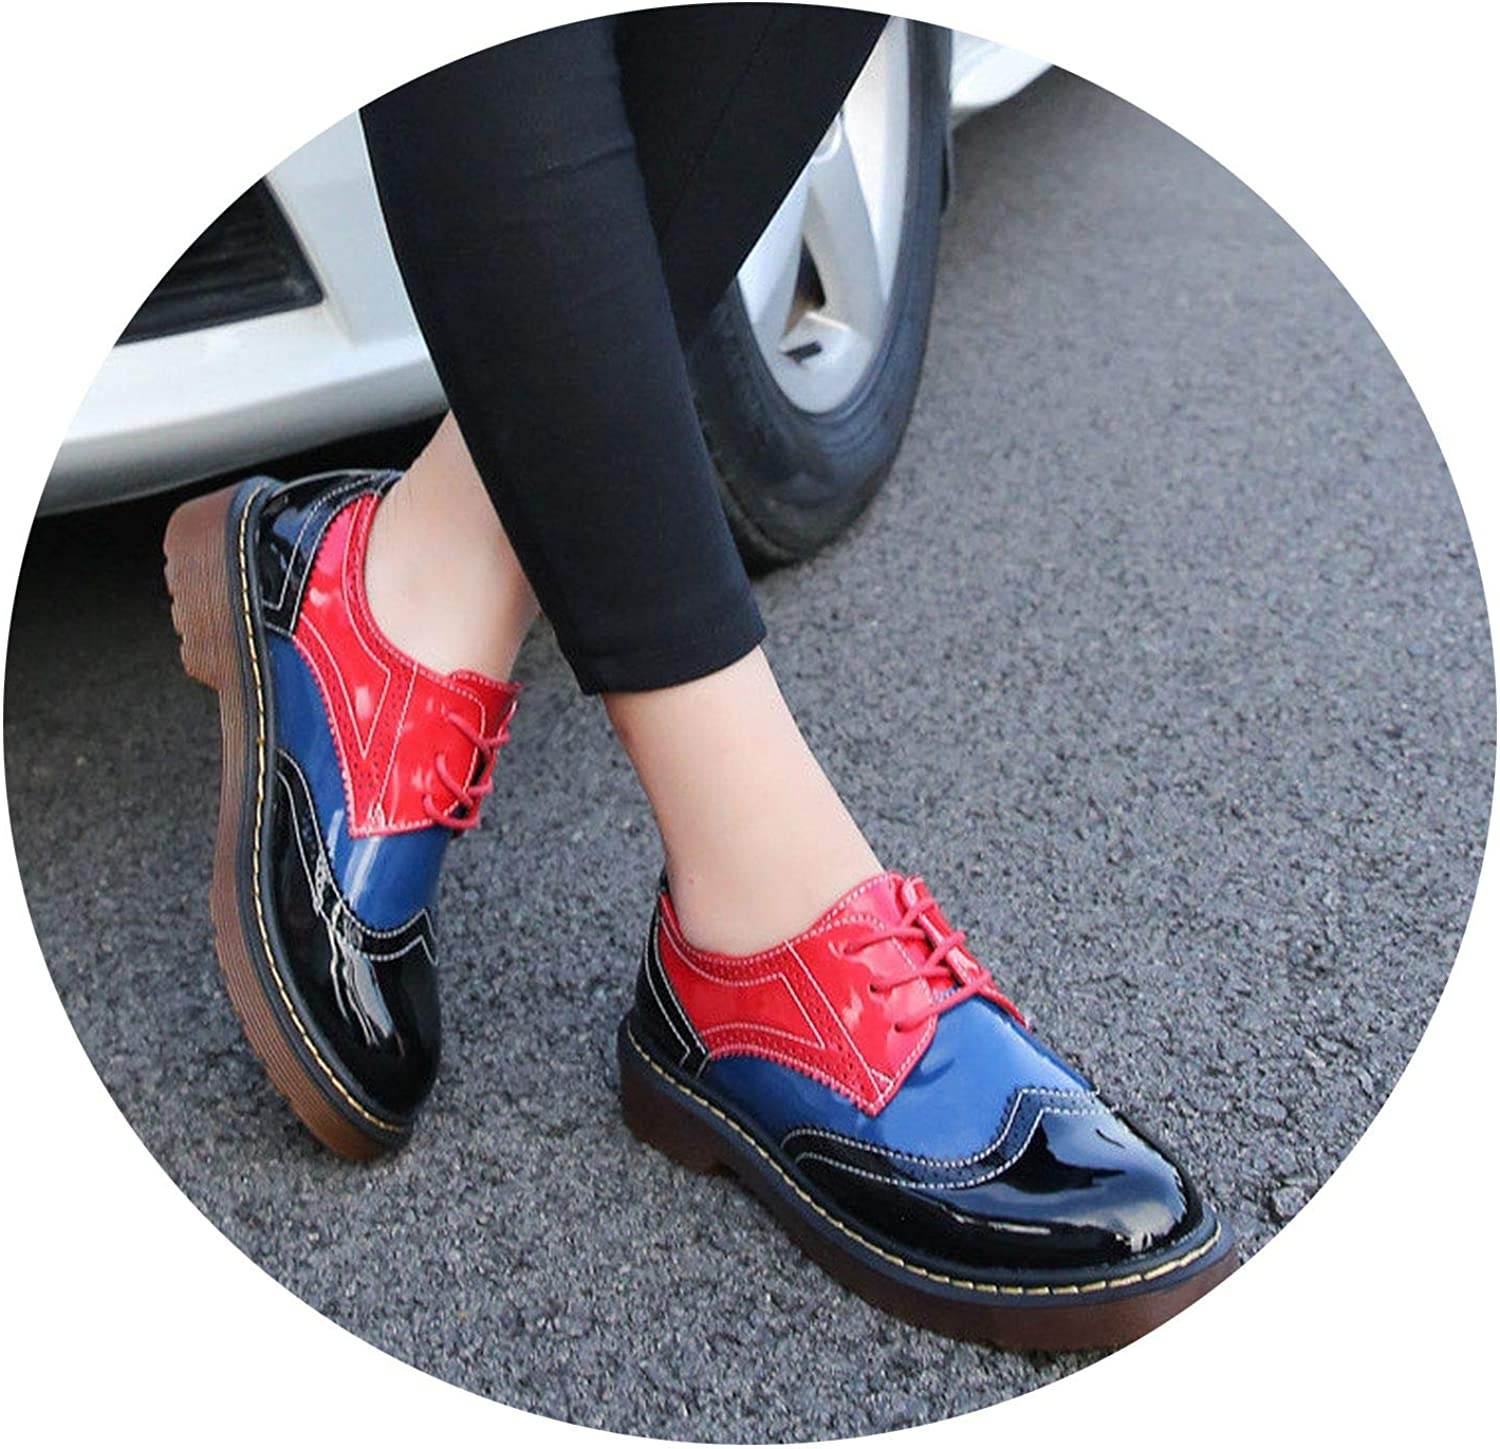 Ruoruo Women Platform Women's Oxs shoes Woman Flats Casual Vintage shoes Punk pers Footwear